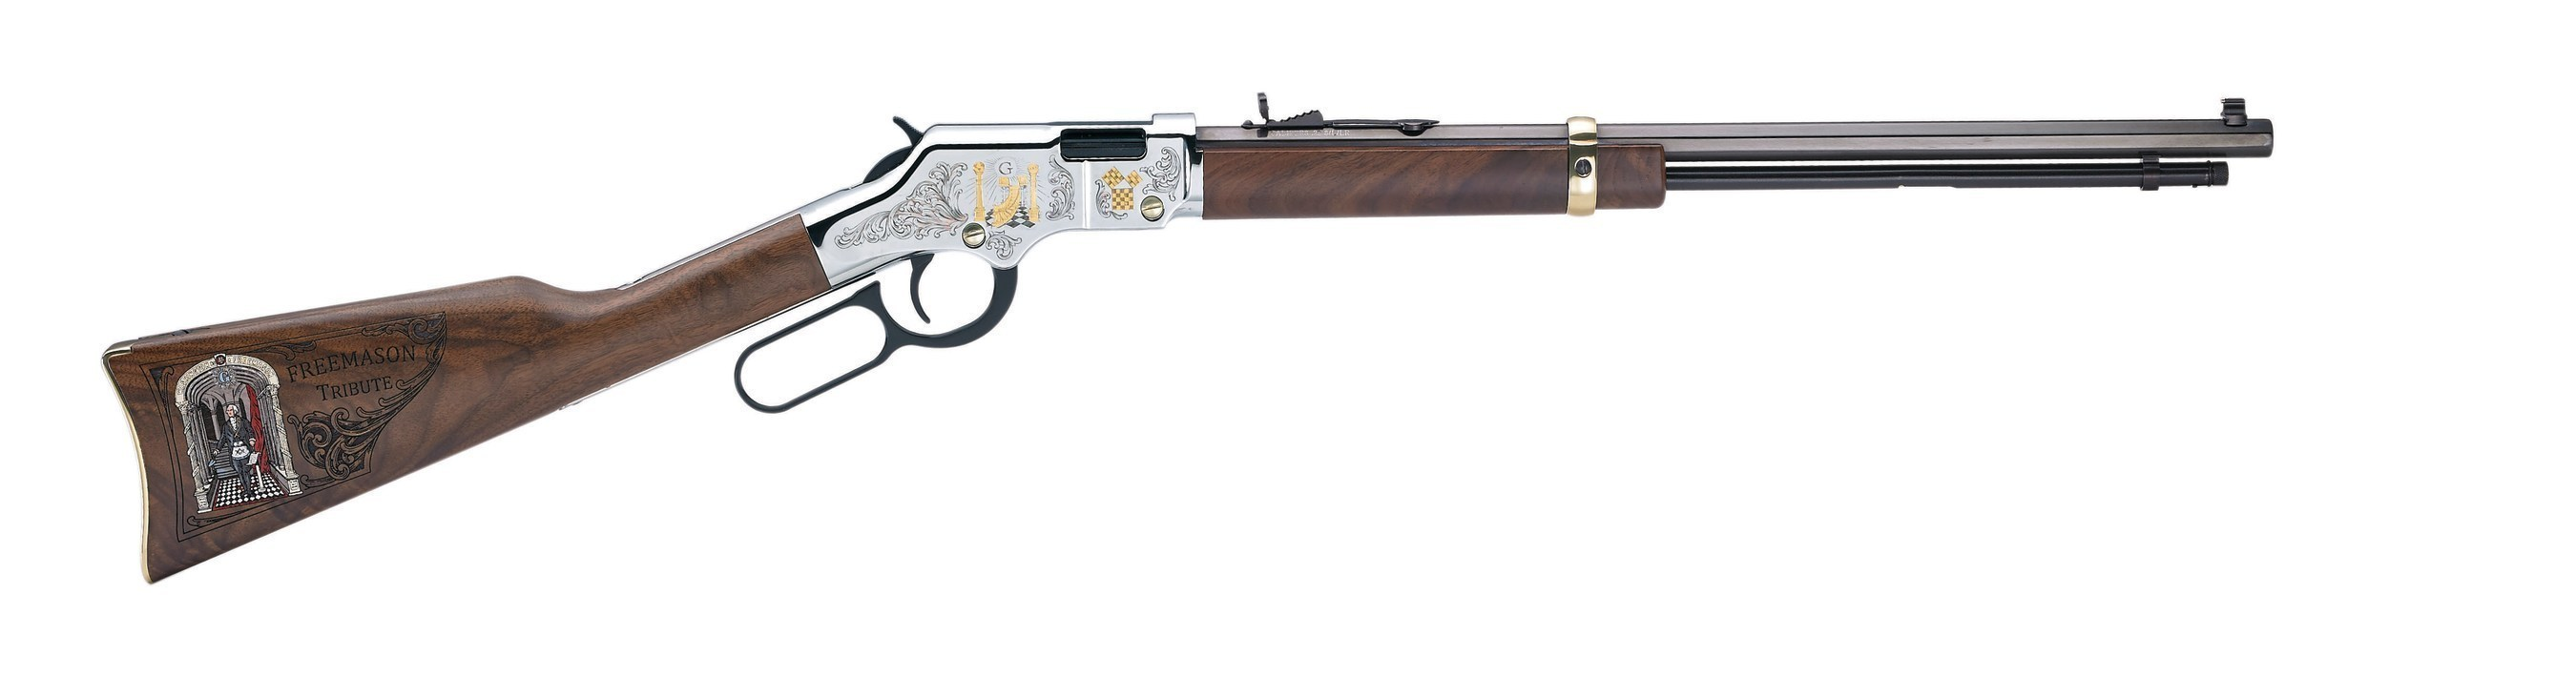 The Henry Golden Boy Freemasons Tribute Edition Rifle. Visit henryrifles.com to learn more.